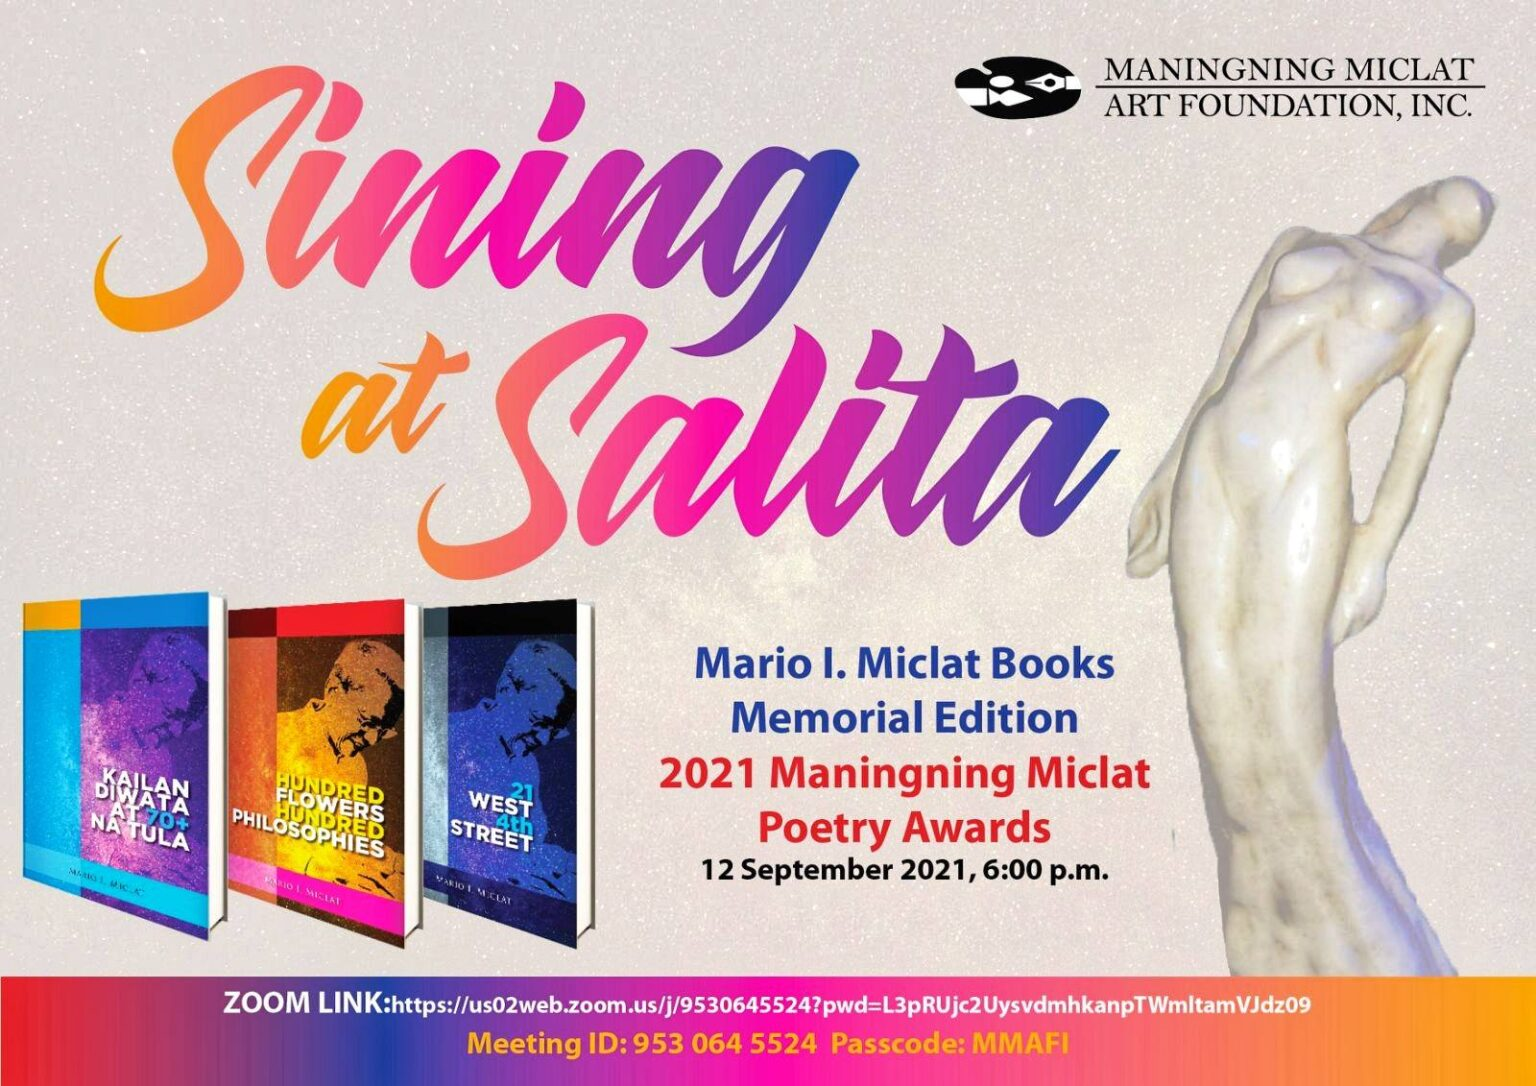 Writer and Educator Mario Miclat's Last Books Launched on Sept. 12